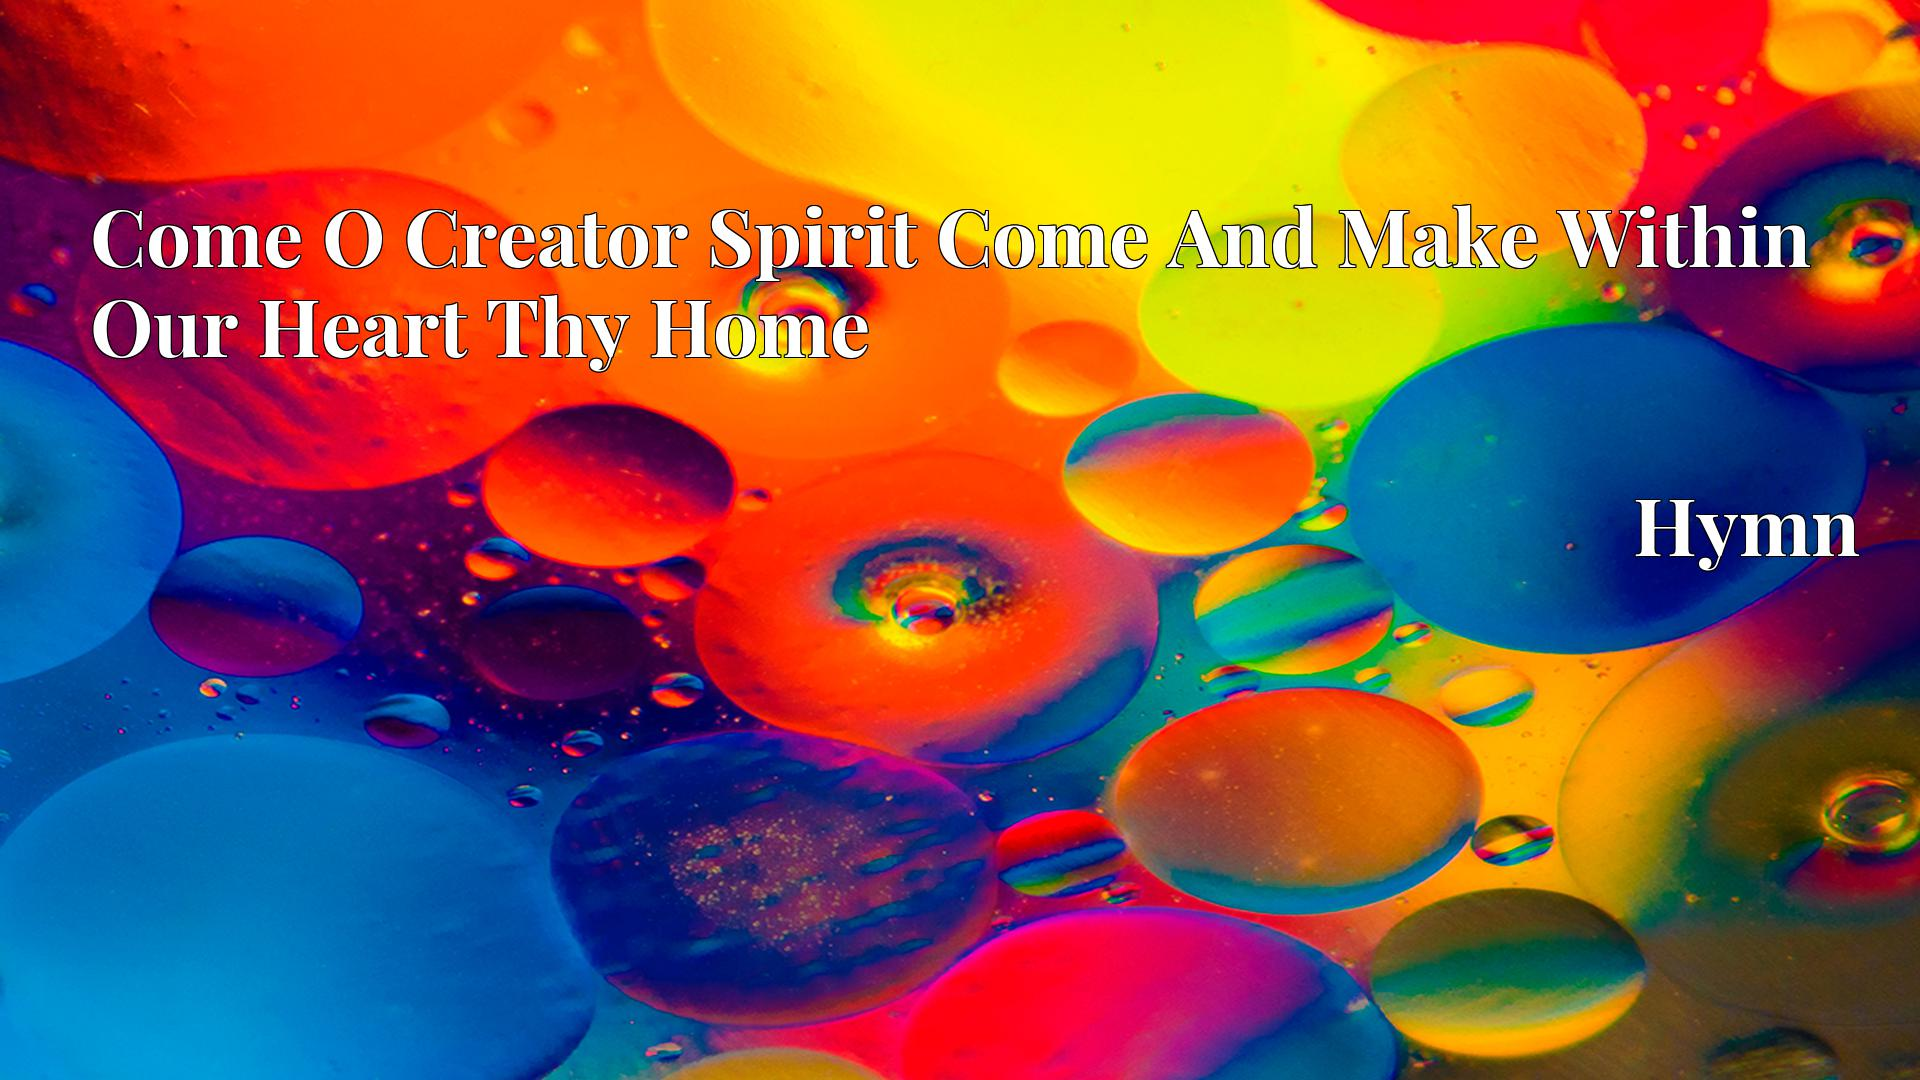 Come O Creator Spirit Come And Make Within Our Heart Thy Home Hymn Lyric